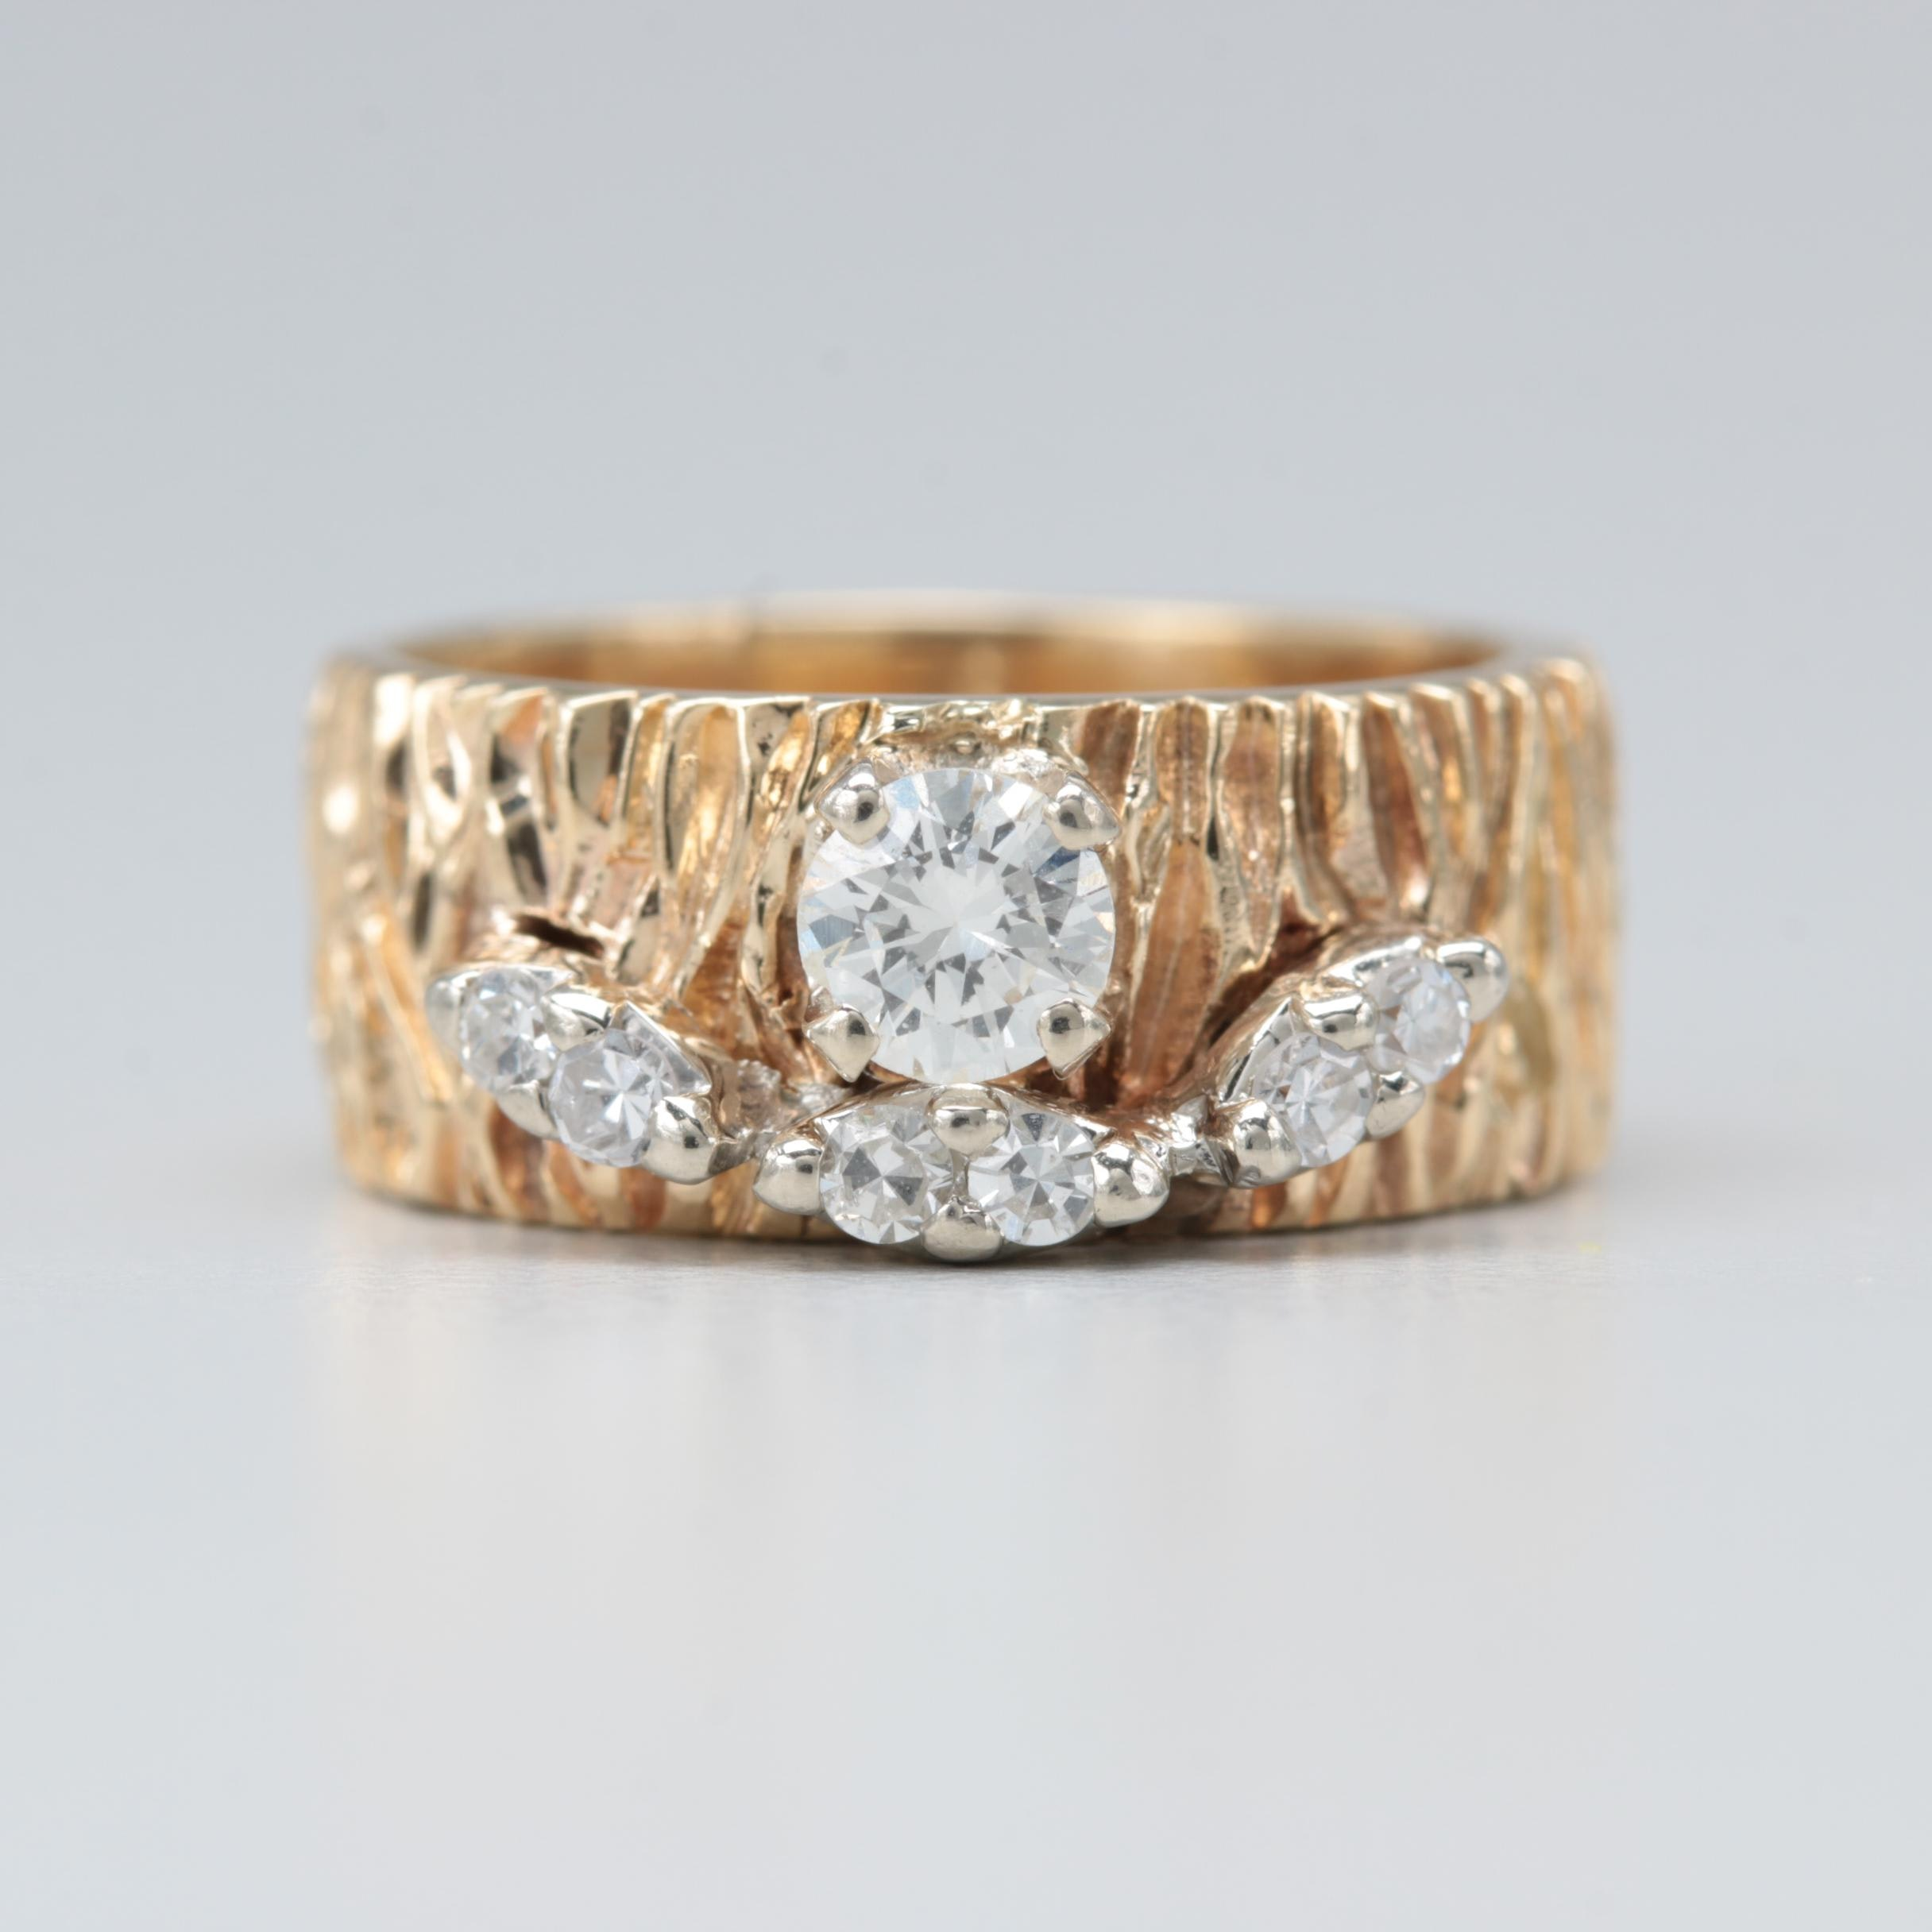 14K Yellow Gold Diamond Ring with Textured Band